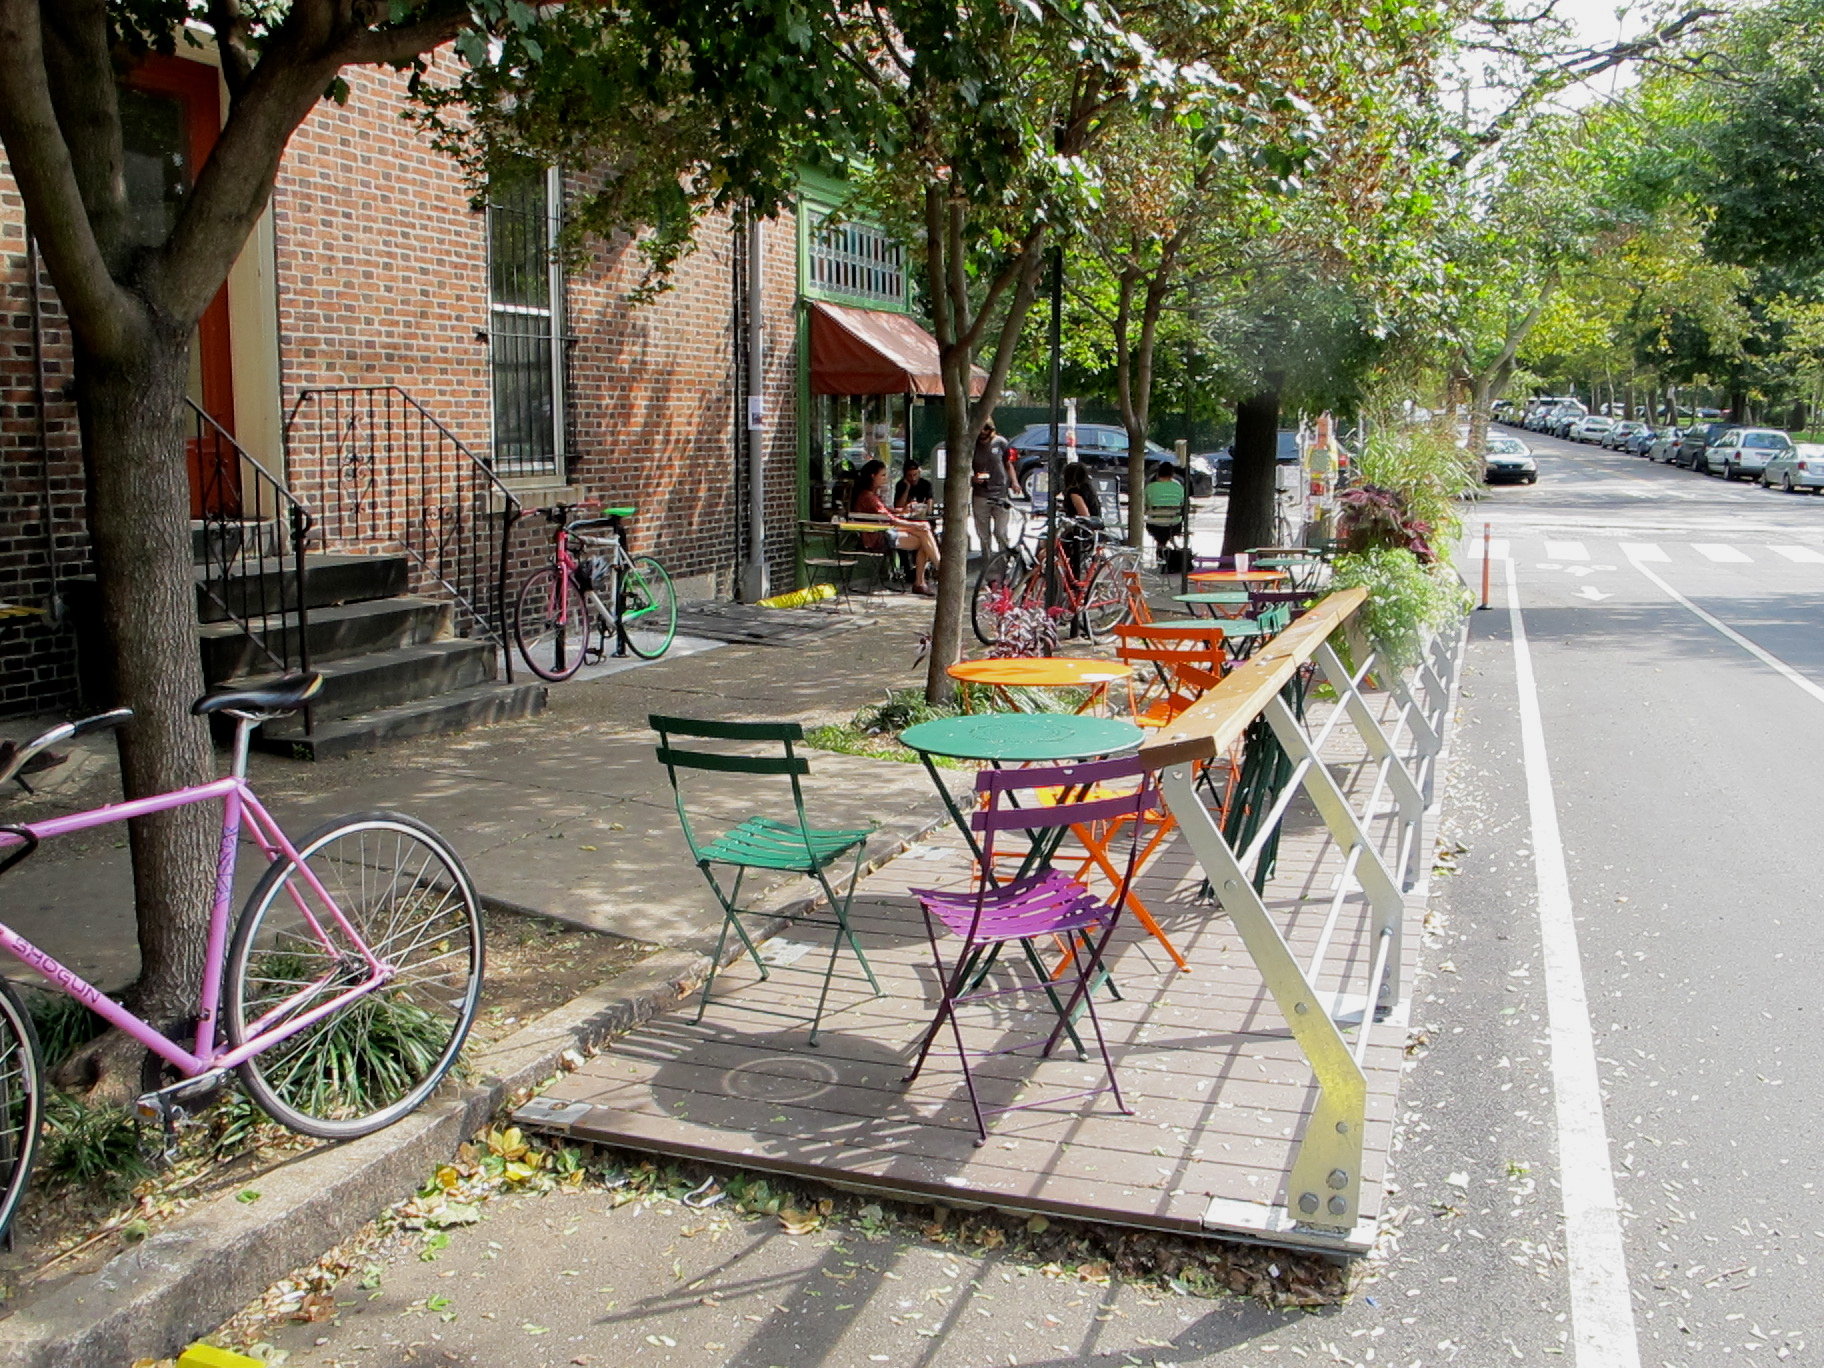 Parklet outside the Green Line Cafe at 43rd and Baltimore Avenue.